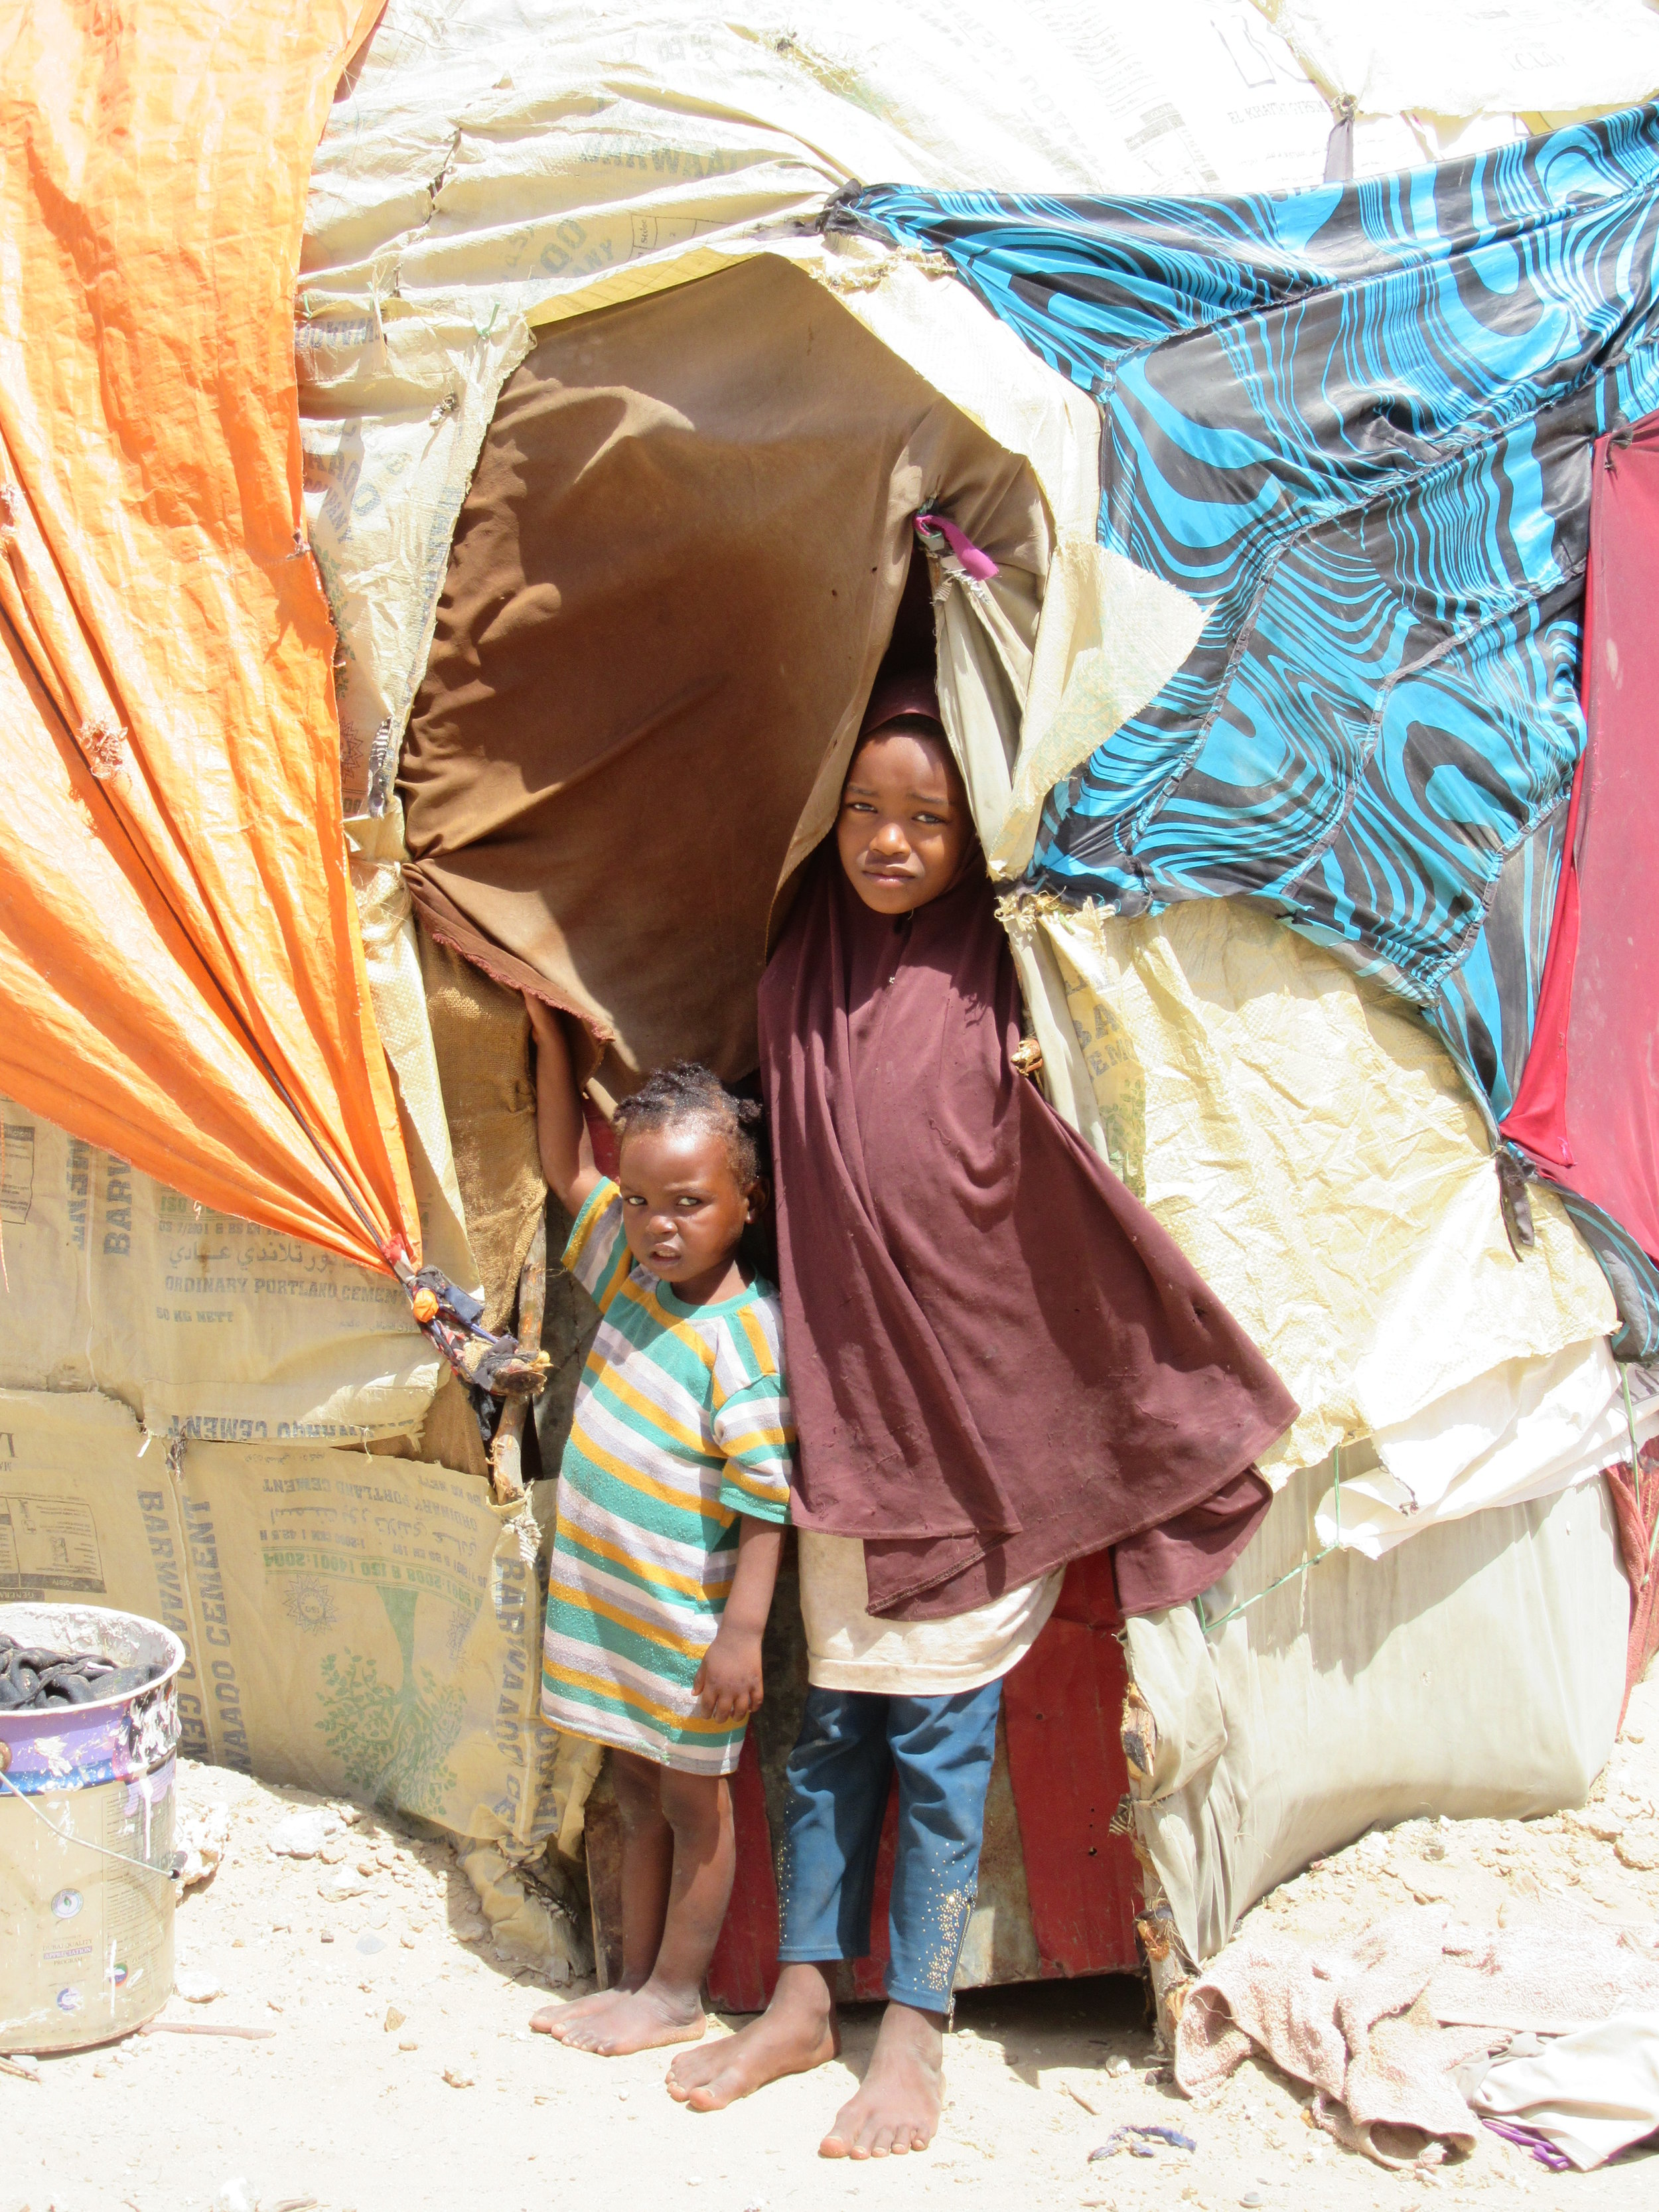 New arrivals construct makeshift shelters using tarps, sticks, and cloth.